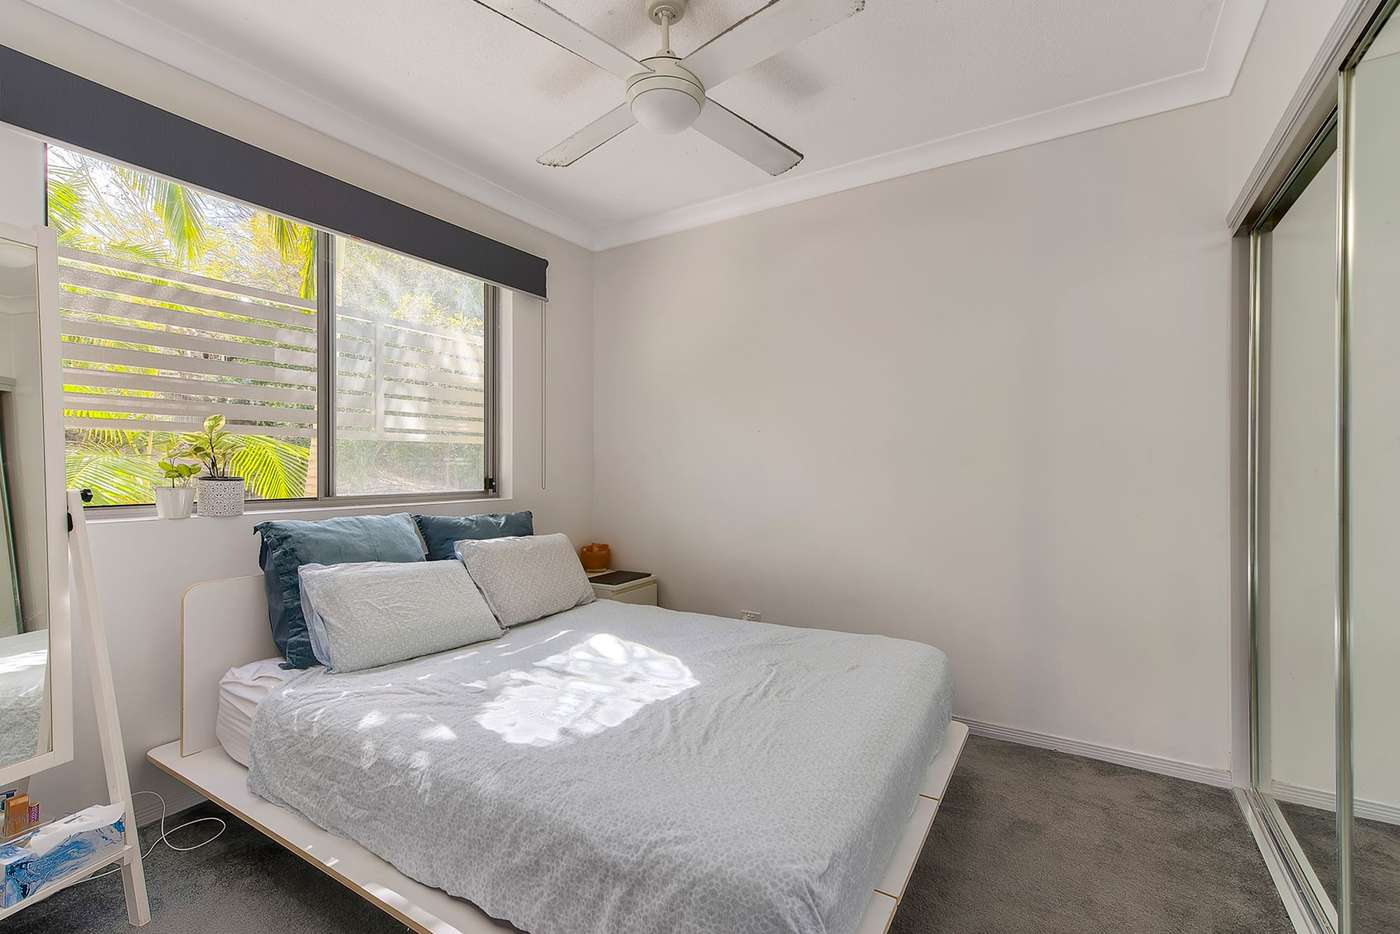 Fifth view of Homely house listing, 61/40 Nathan Avenue, Ashgrove QLD 4060